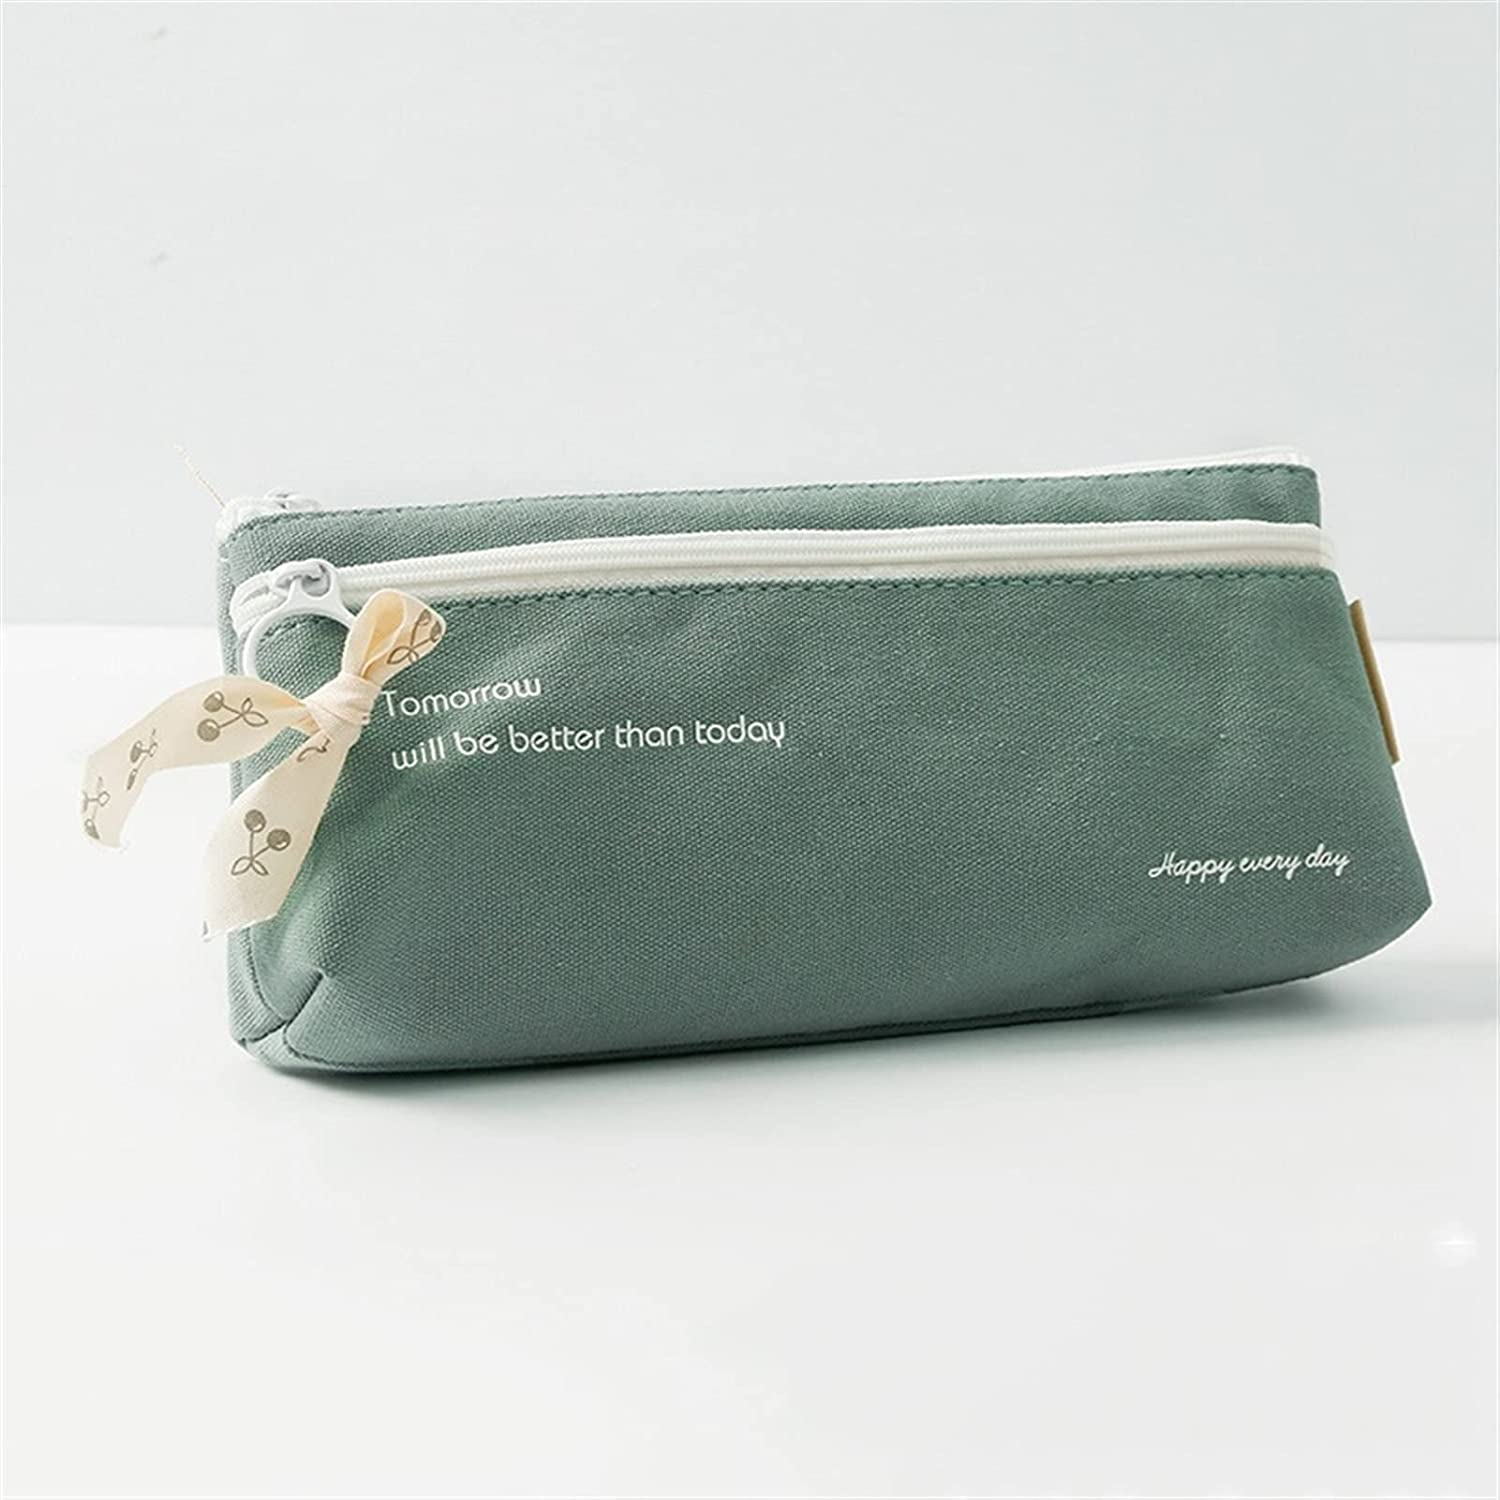 LKL Sale price Large Capacity Pencil Bag Layer Double Cases w Canvas Max 54% OFF